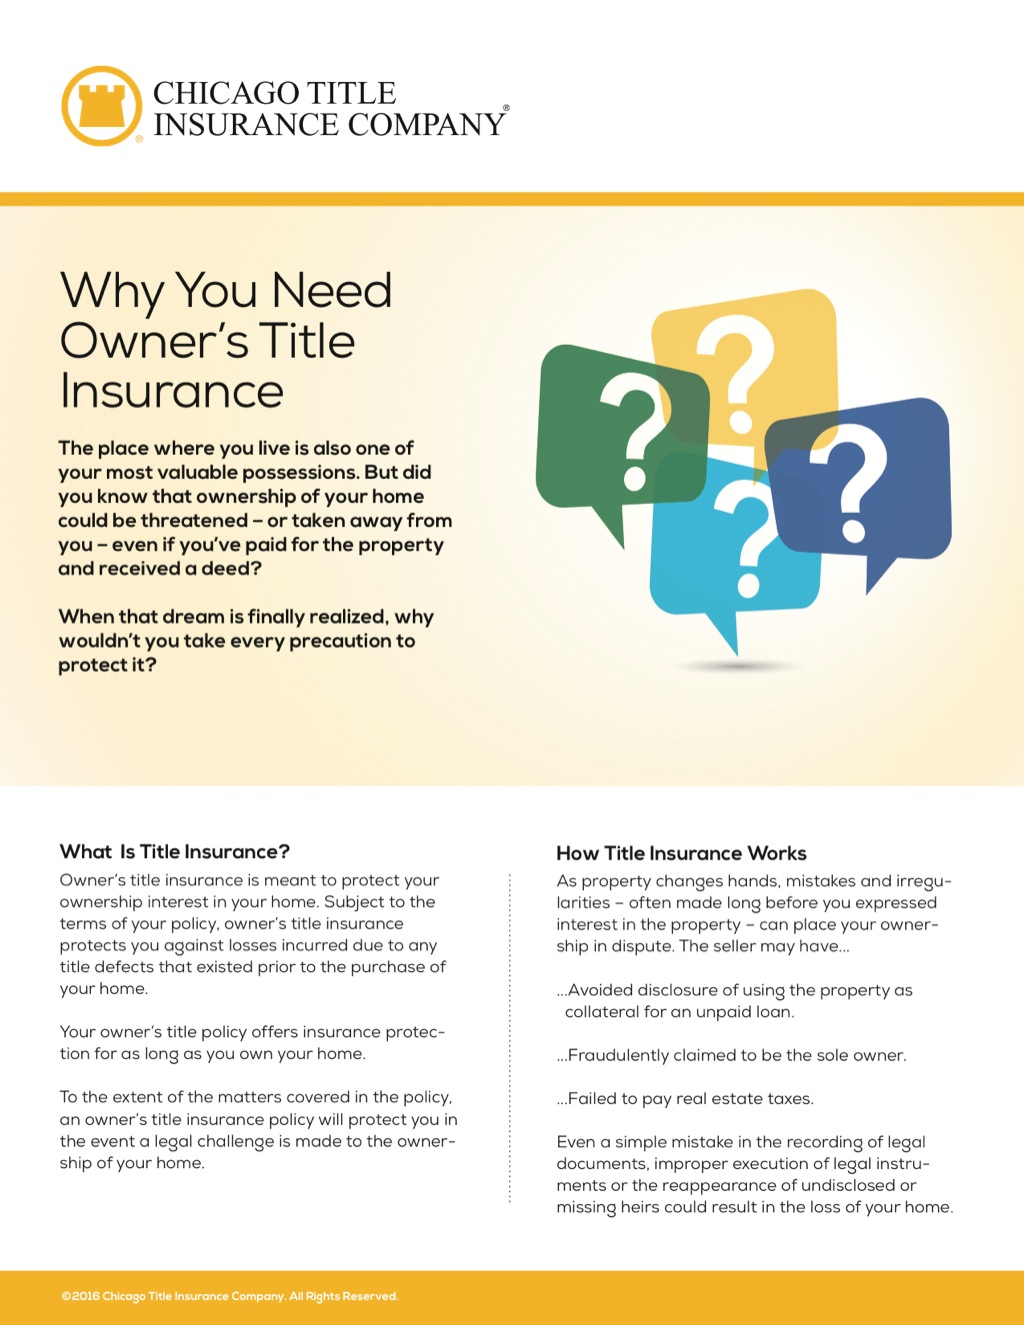 Corefact Why Owner's Title Insurance - CTIC